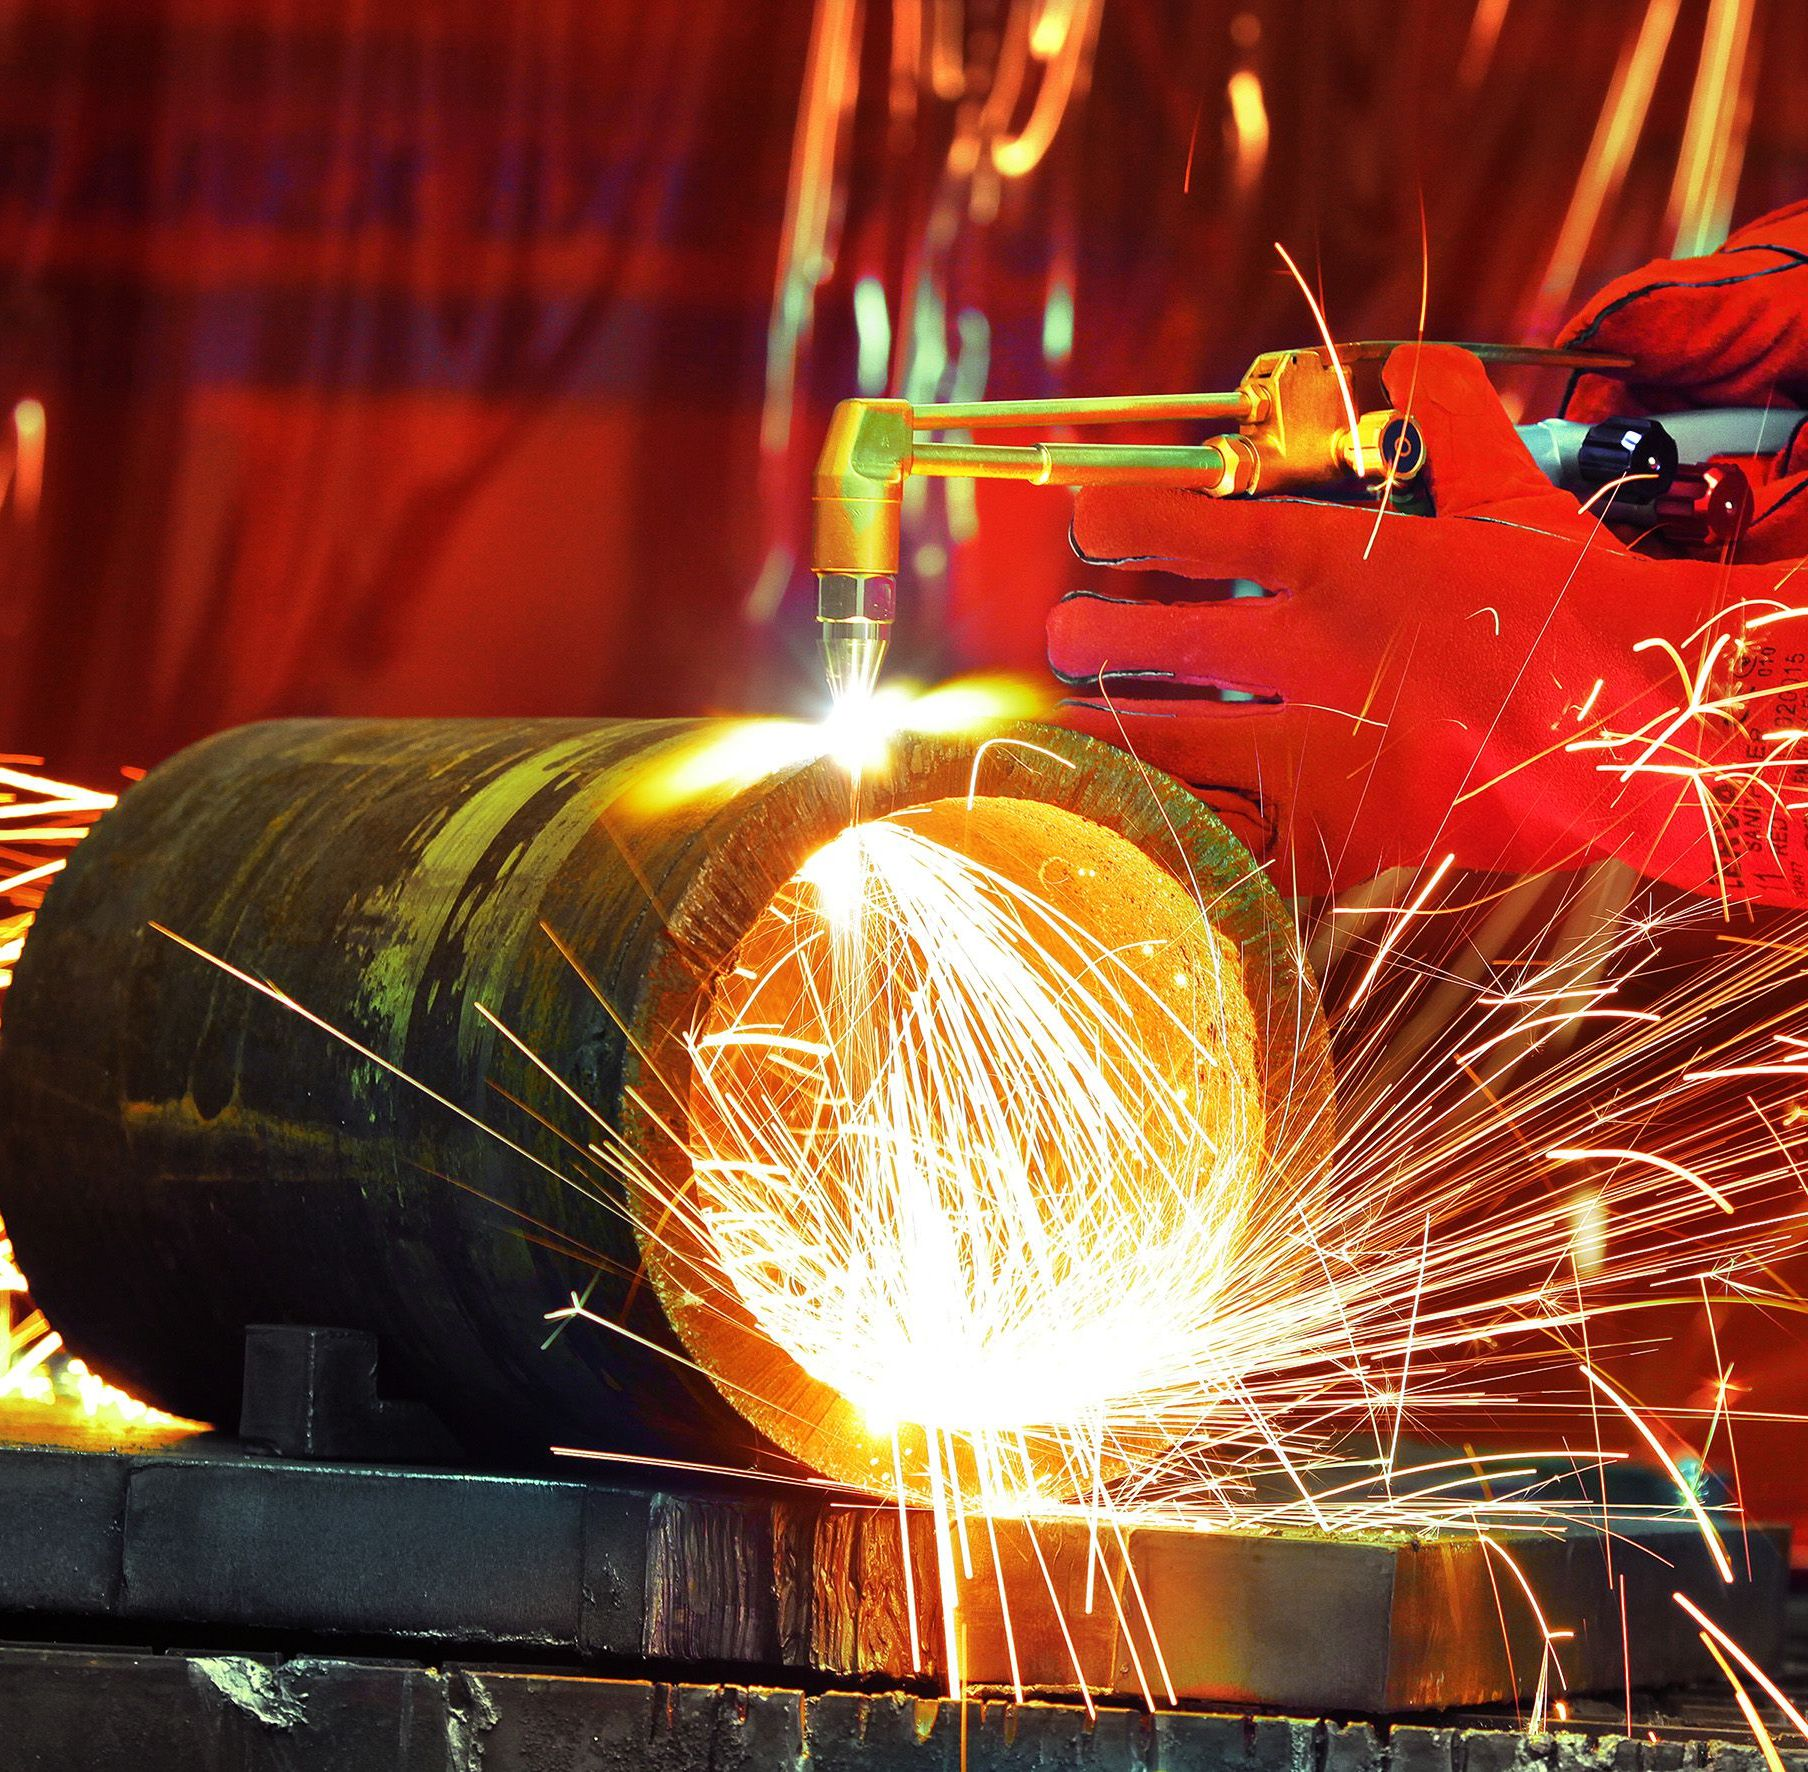 Steel Fabrication page image